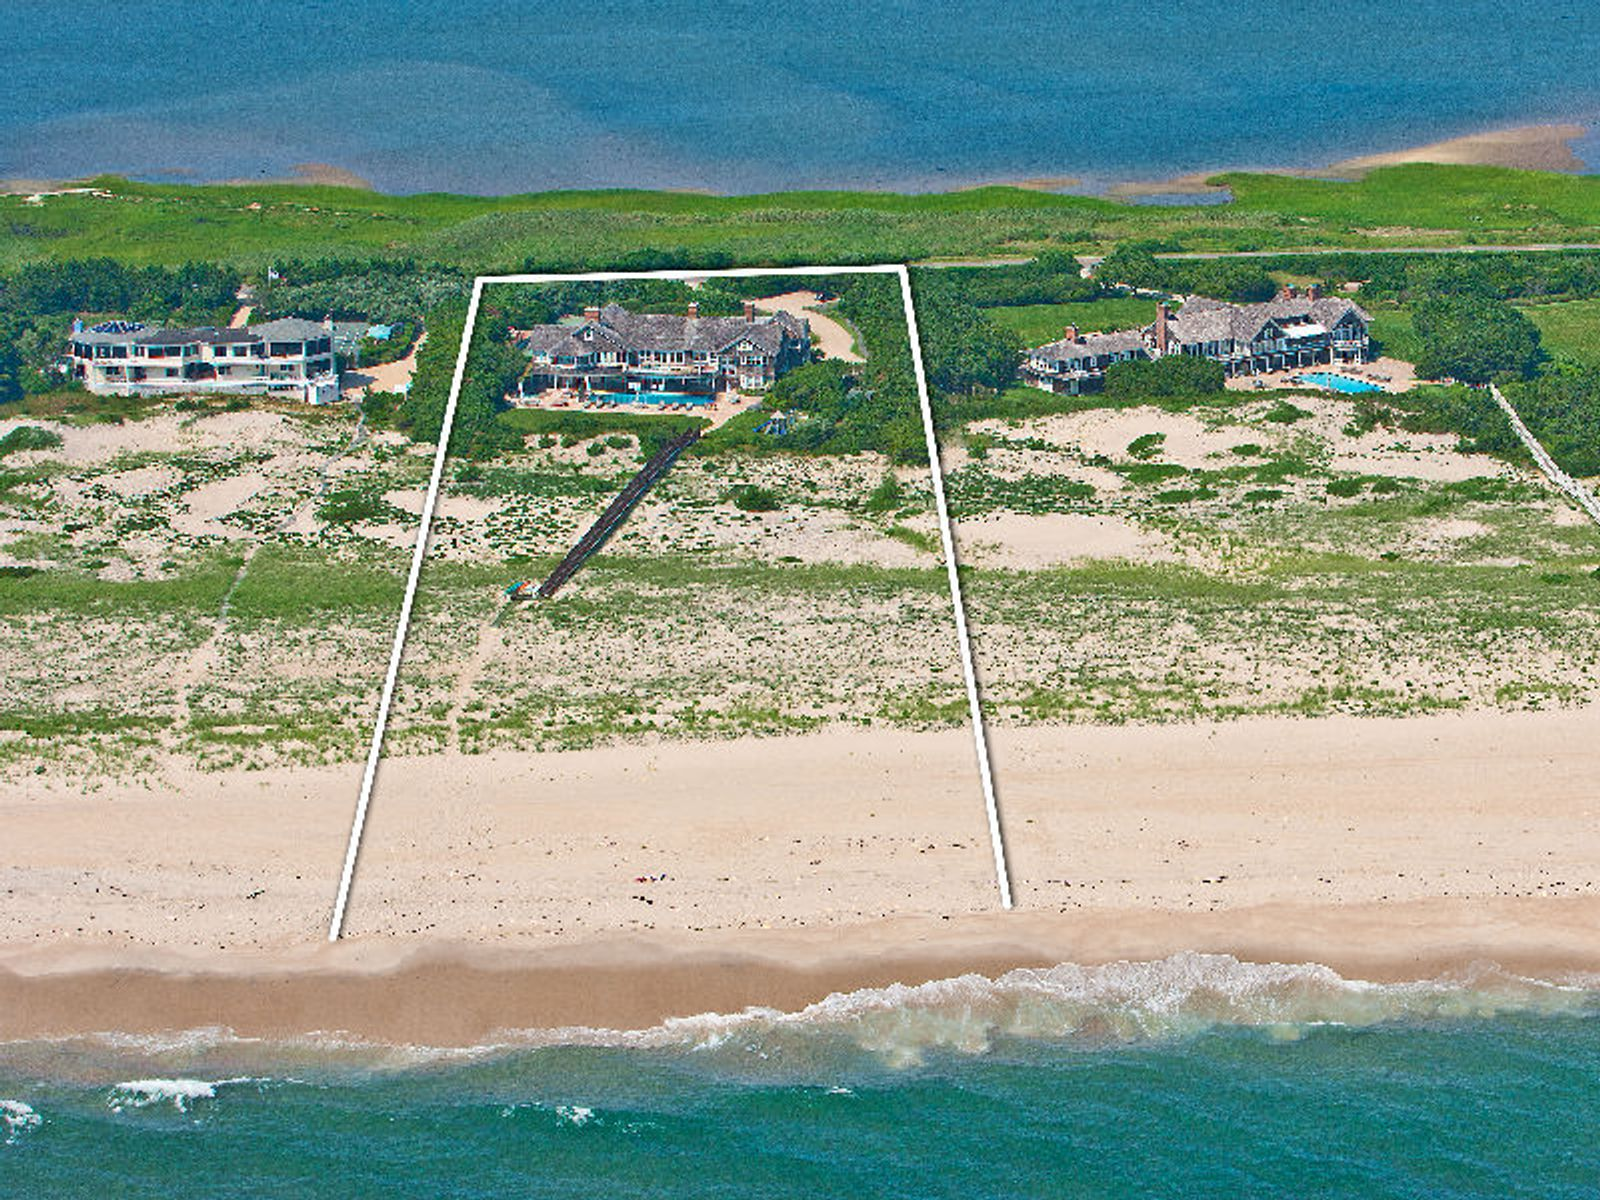 Oceanfront Classic Beach House, Southampton NY Single Family Home - Hamptons Real Estate